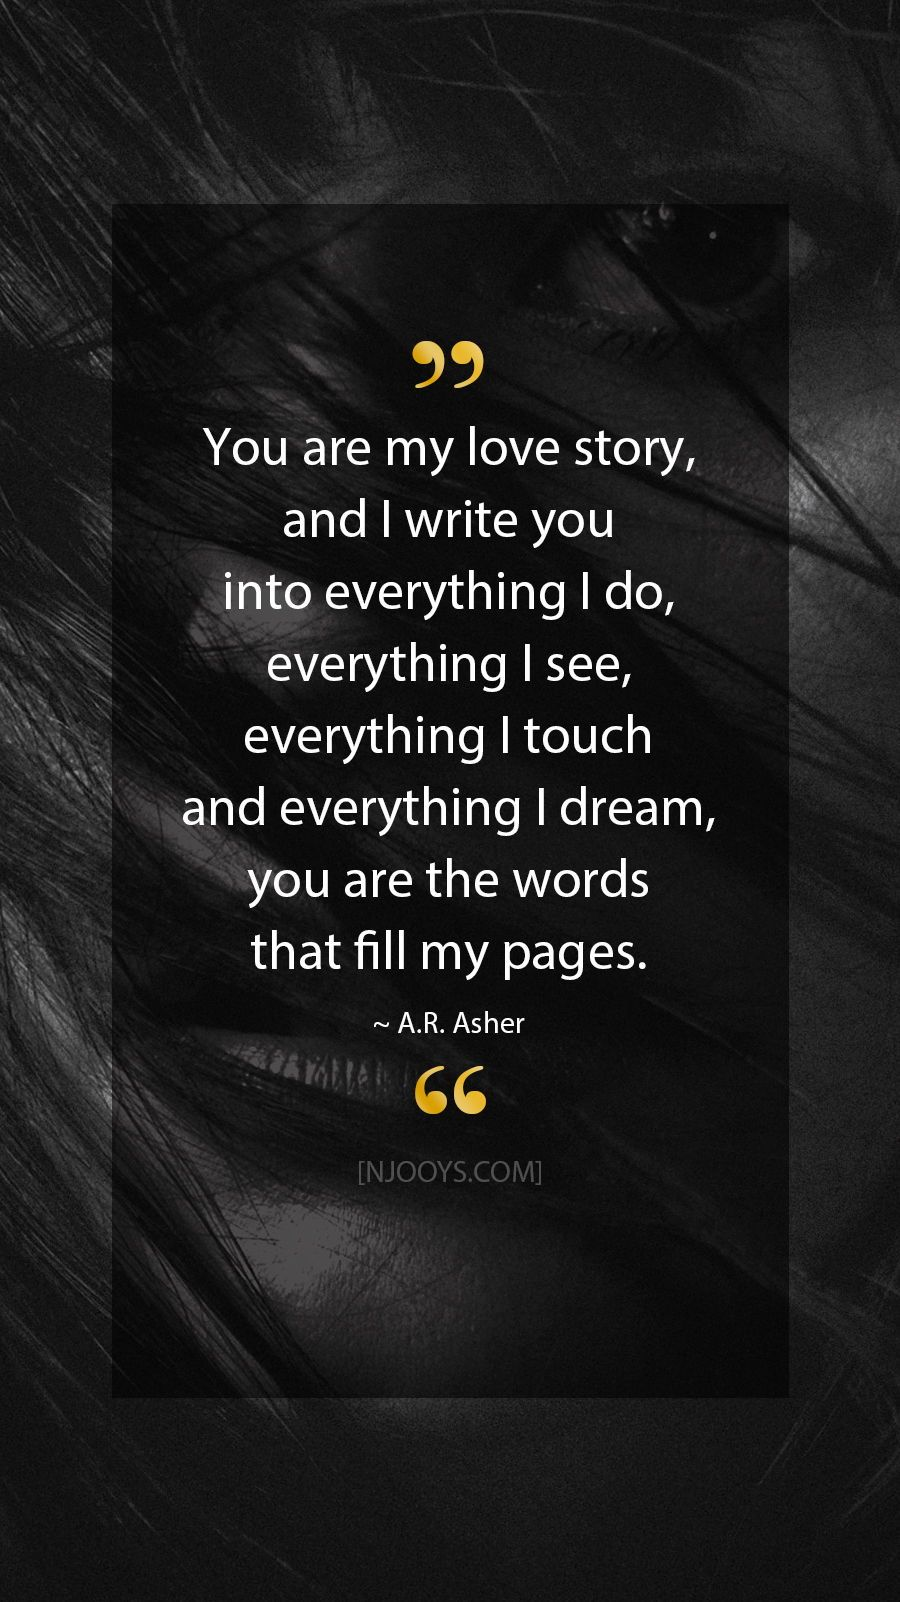 A R Asher Quotes You Are My Love Story And I Write You Into Everything I Do My Everything Quotes You Are My Everything Quotes Motivational Quotes For Love